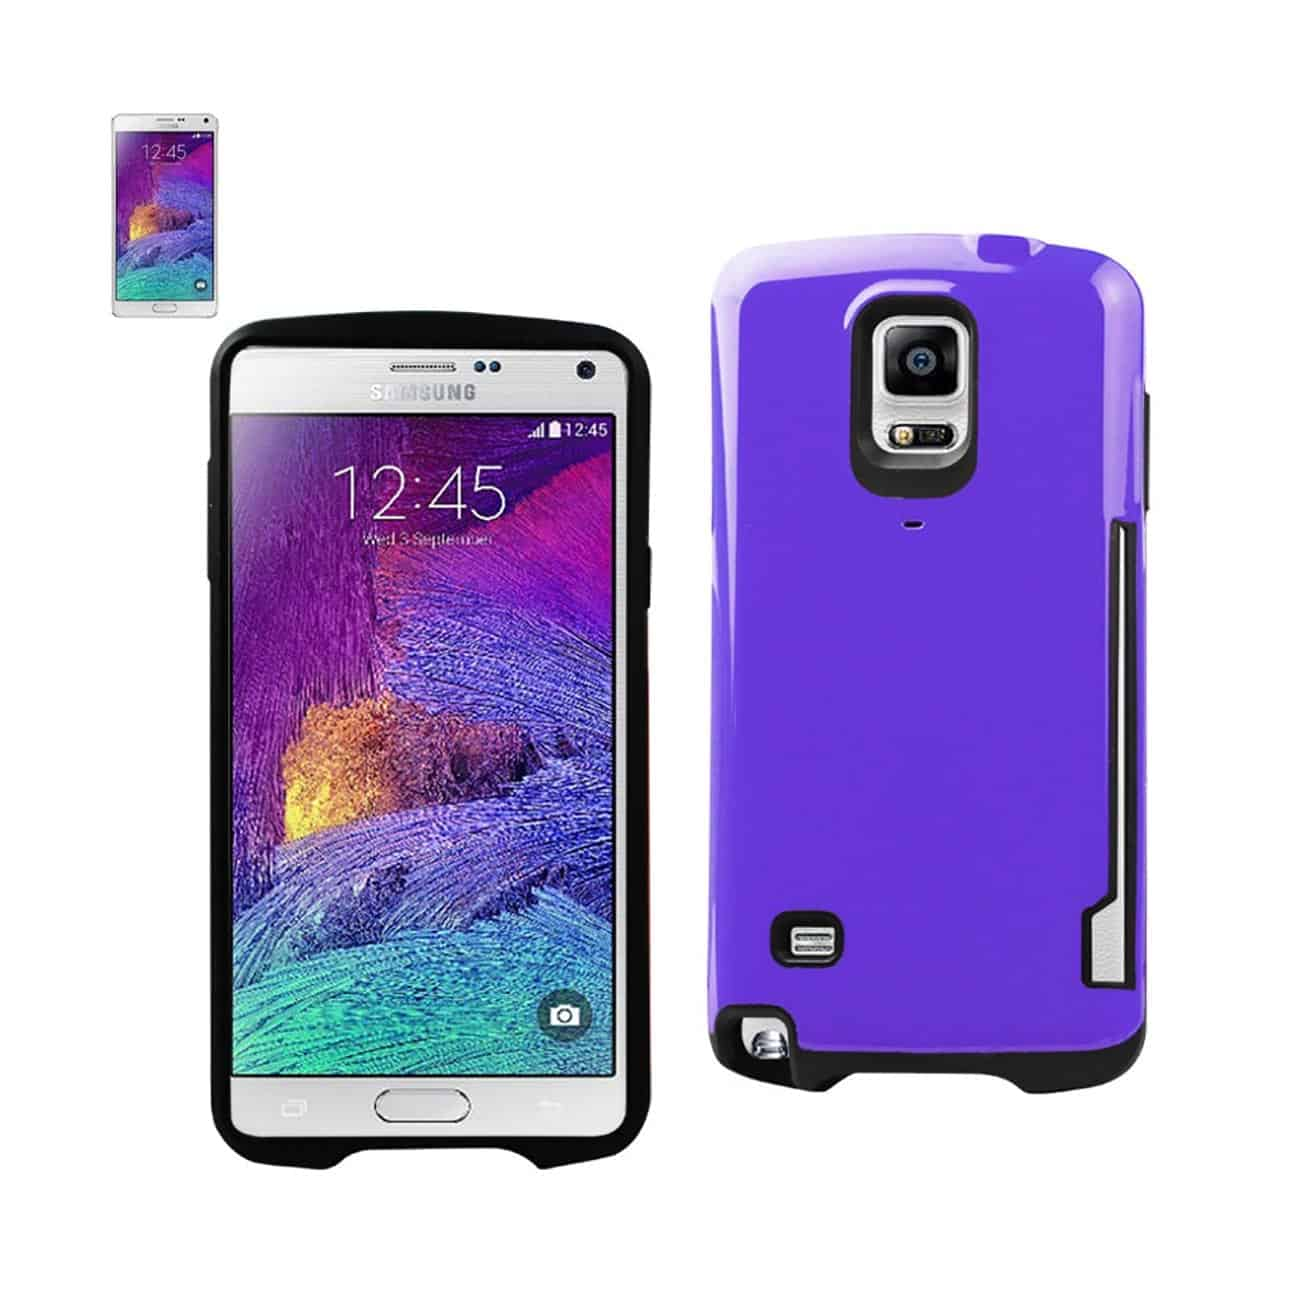 SAMSUNG GALAXY NOTE 4 CANDY SHIELD CASE WITH CARD HOLDER IN PURPLE